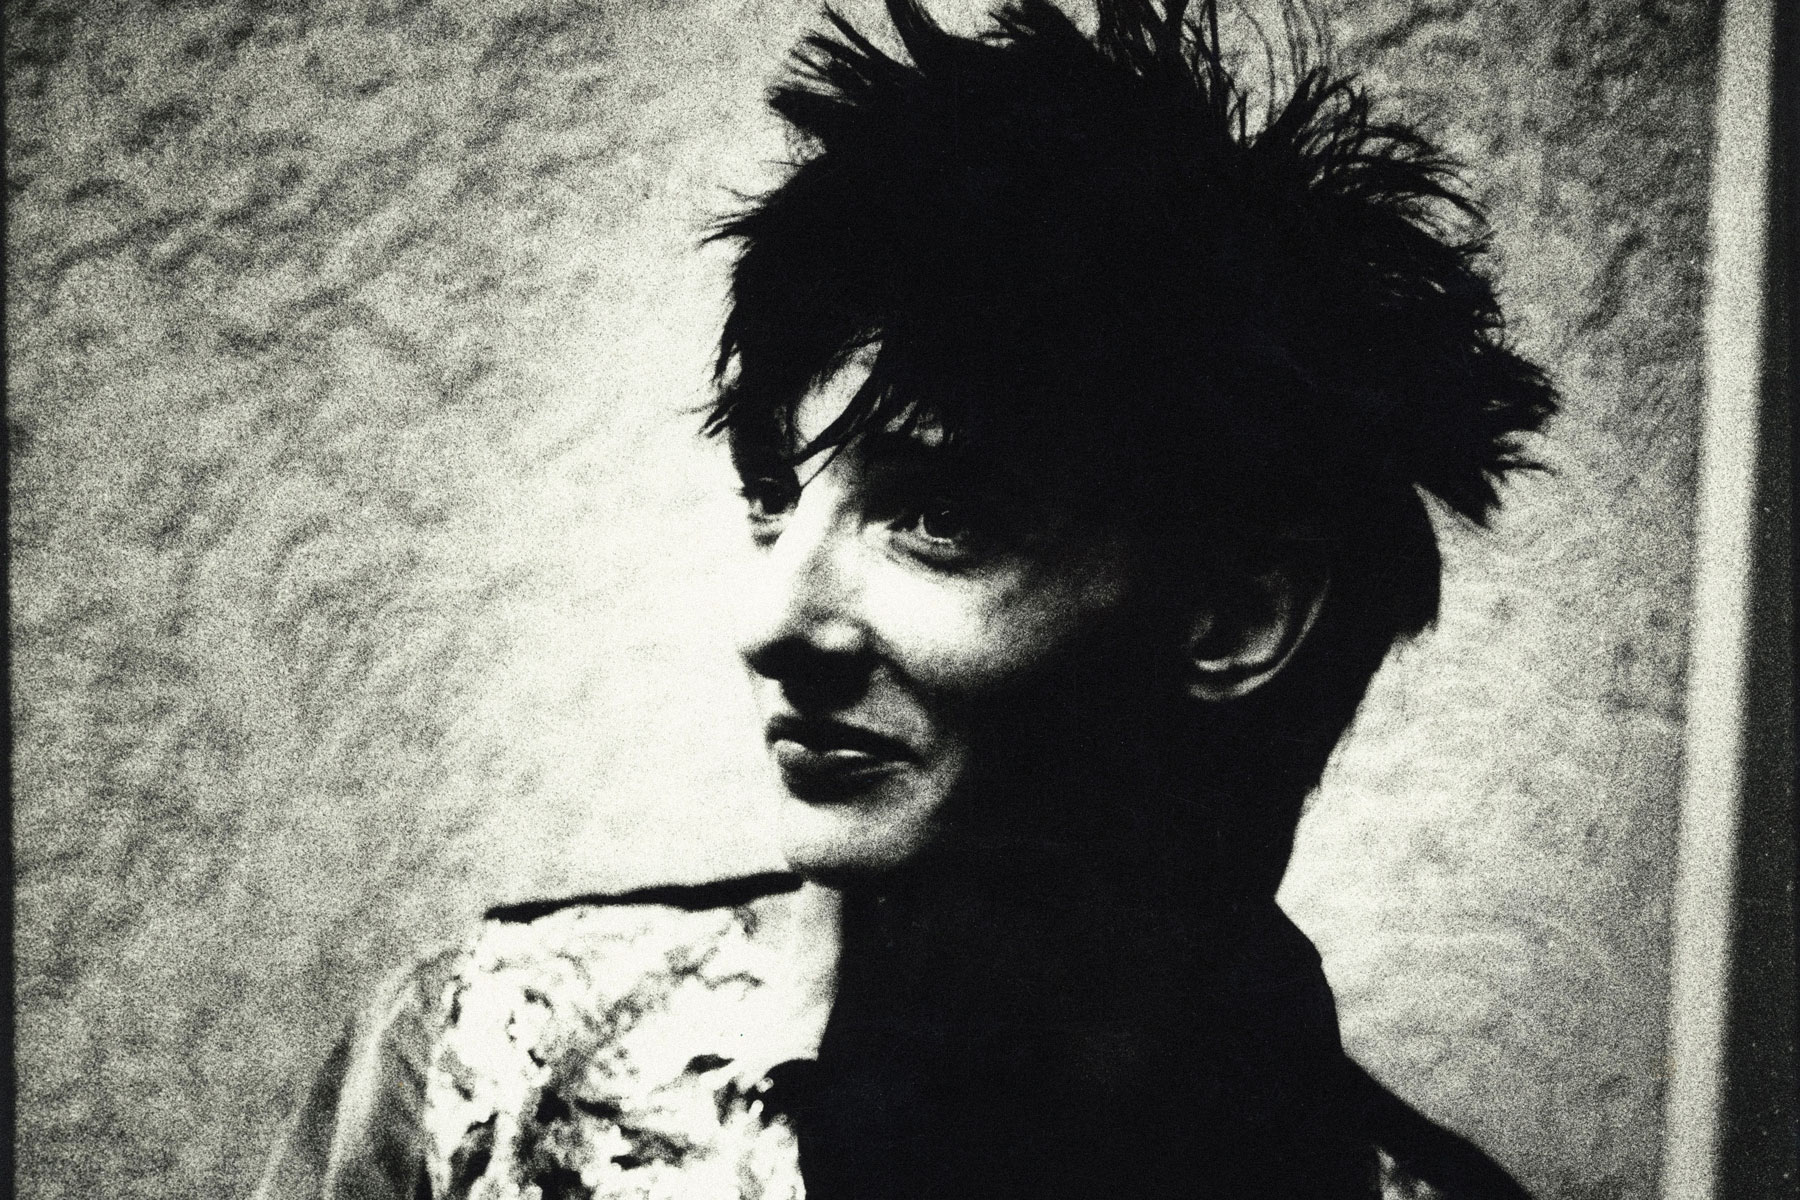 'The Ultimate Underdog Fuck-Up': Rediscovering the Dark Beauty of Rowland S. Howard